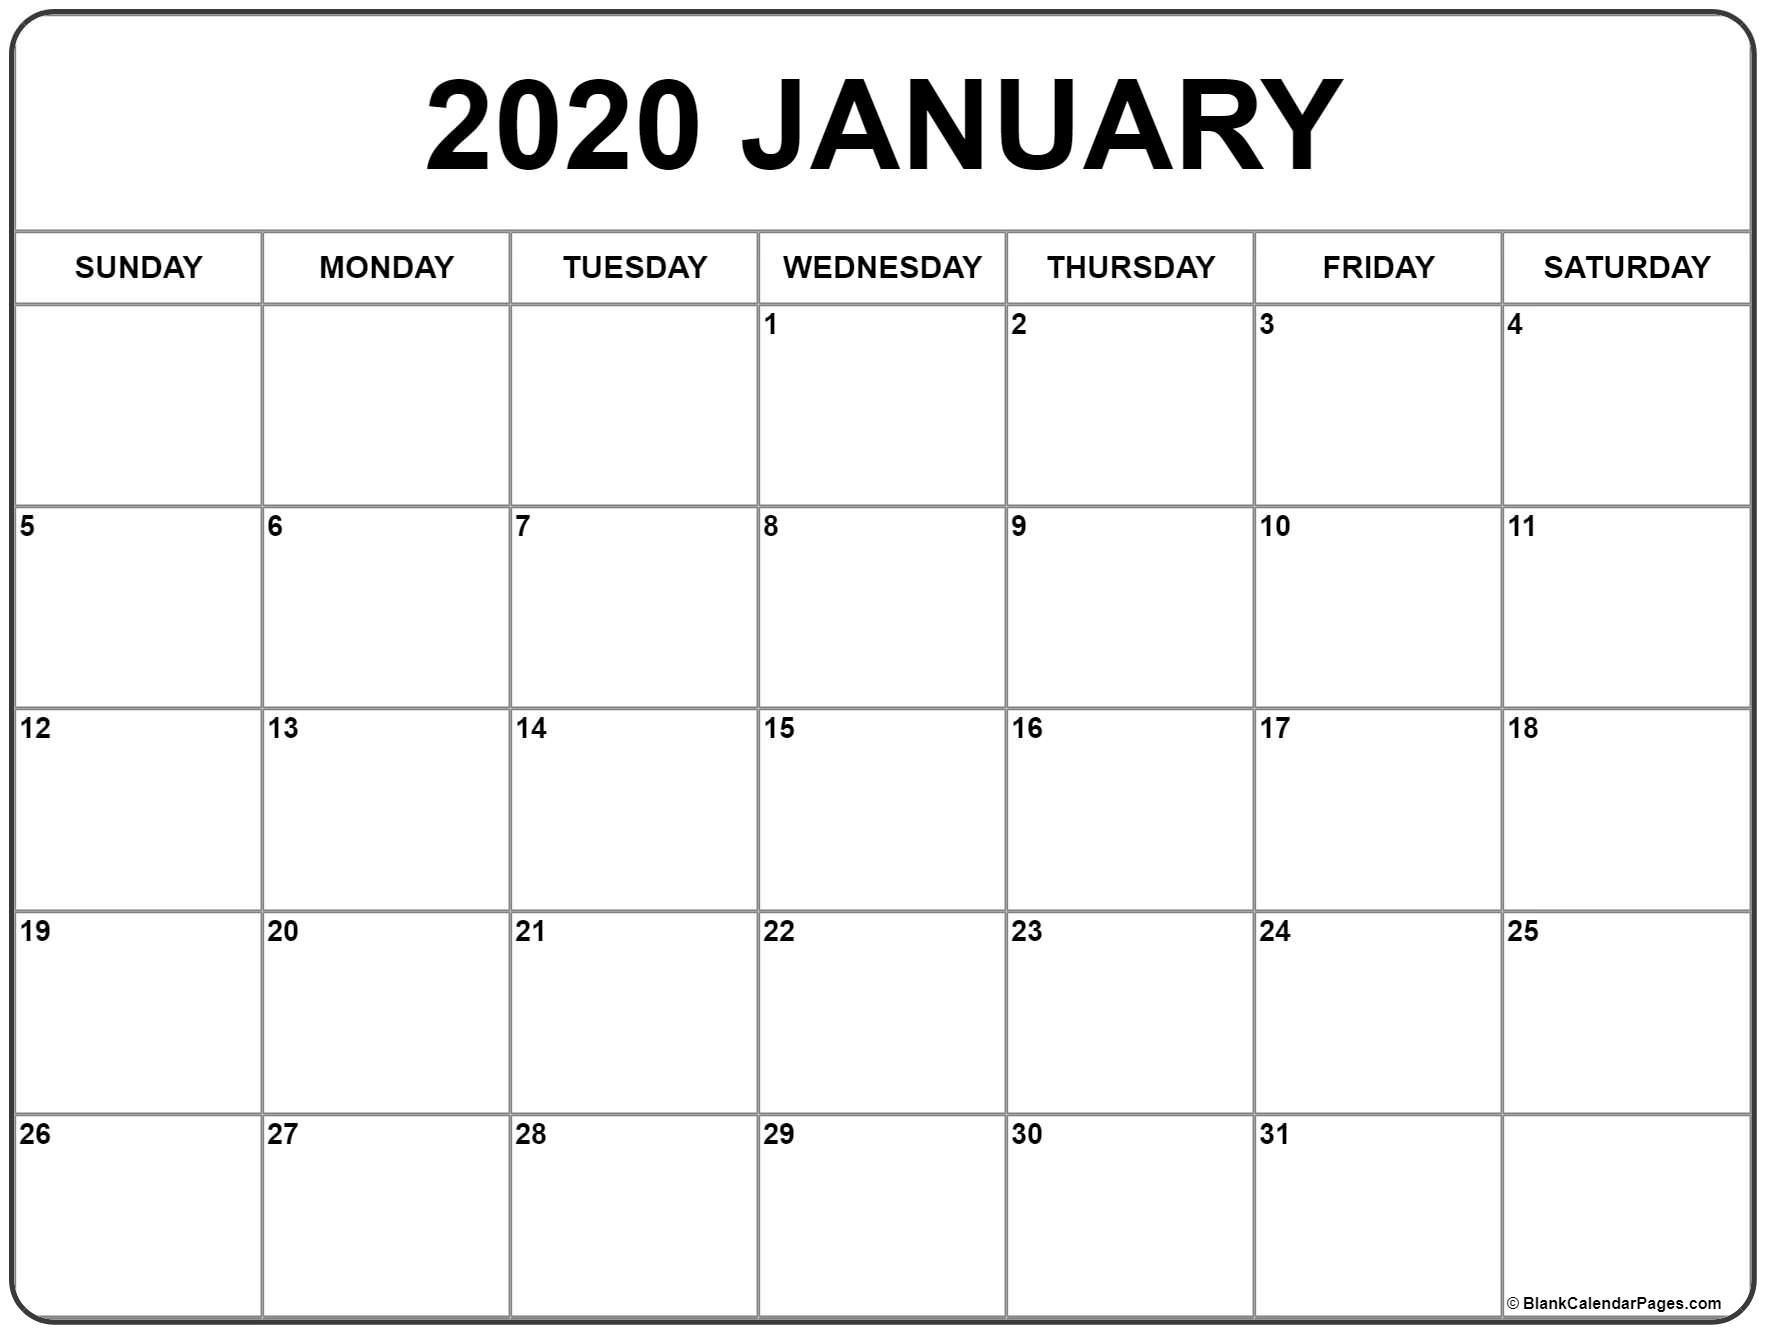 January 2020 Calendar | Free Printable Monthly Calendars-January 2020 Calendar With Moon Phases